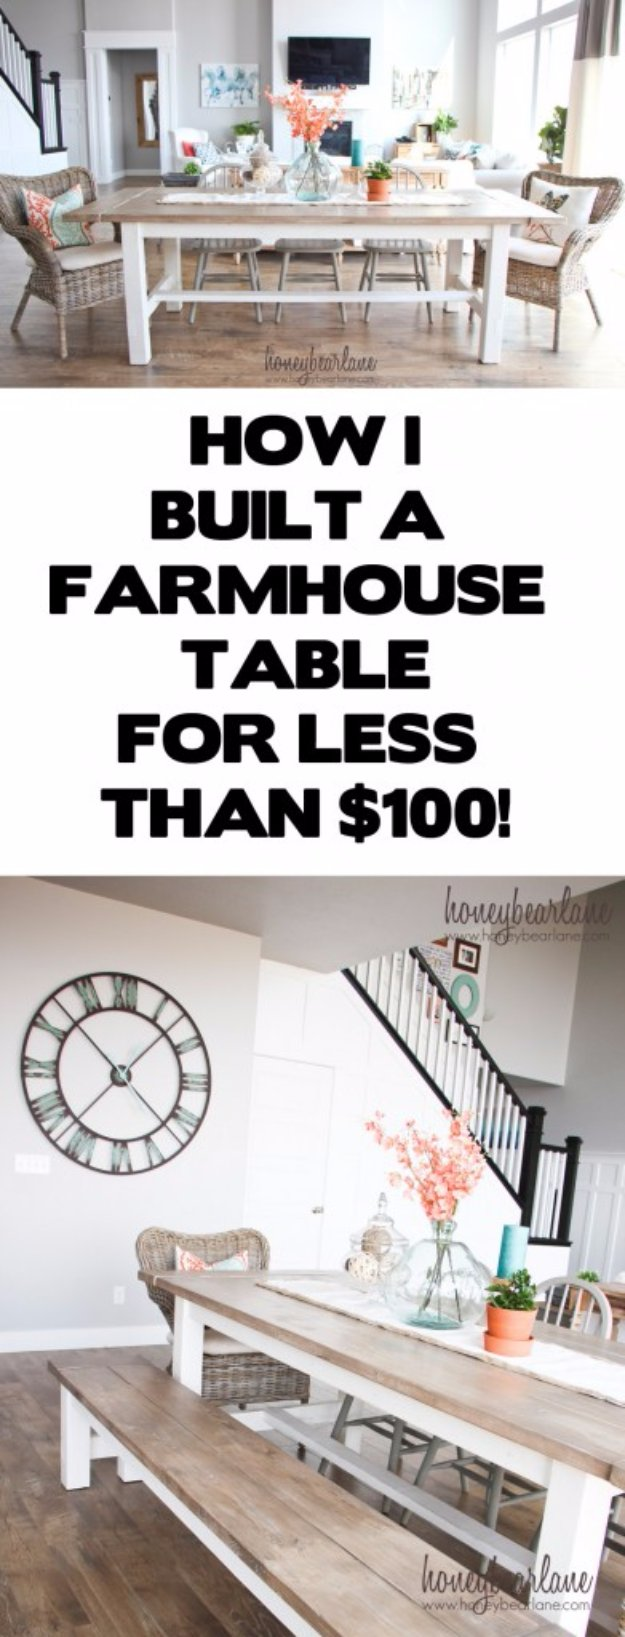 diy living room table decor traditional pictures 36 dining ideas farmhouse and bench cool projects for